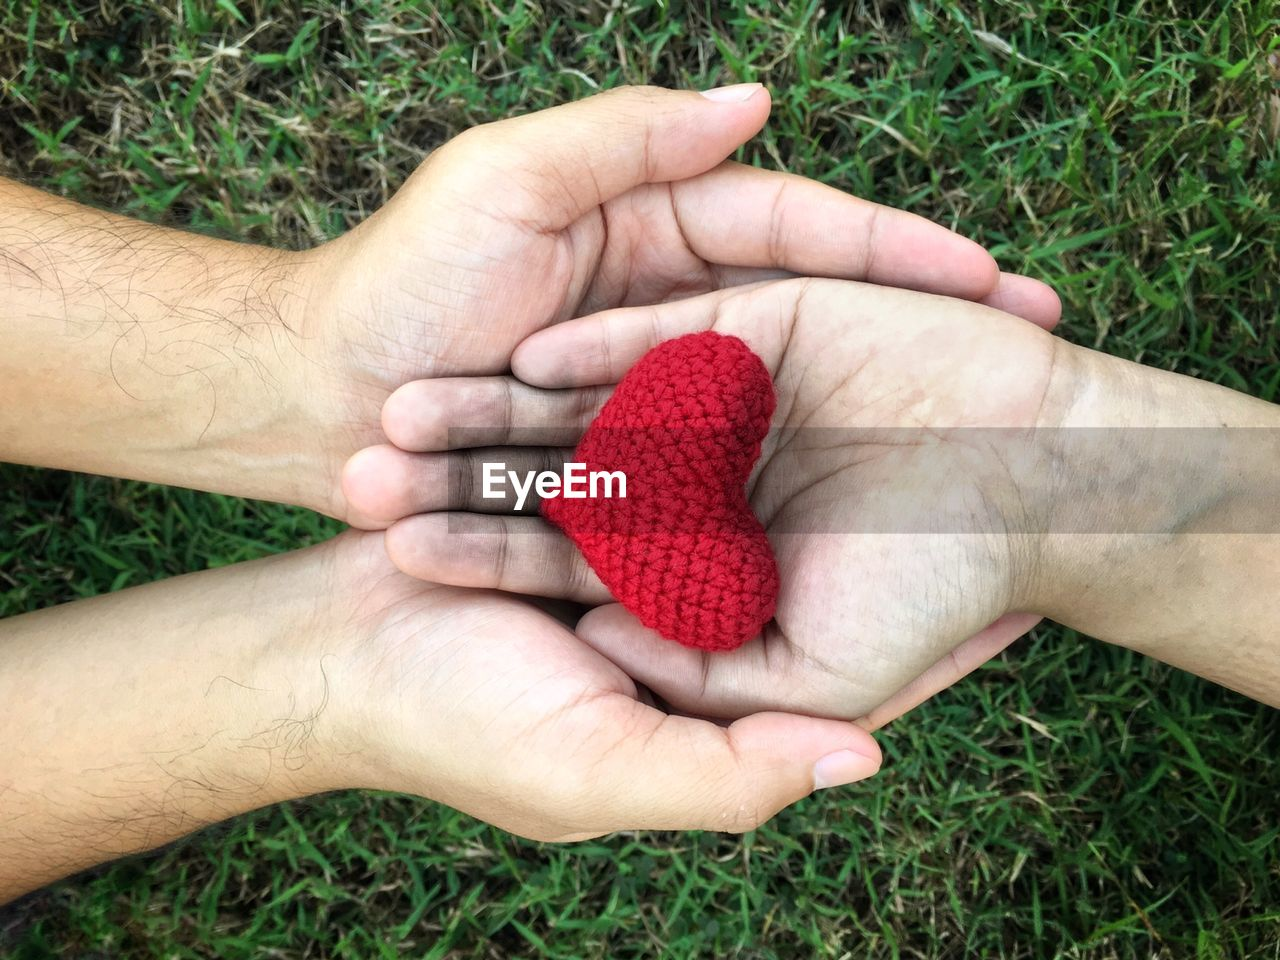 human hand, hand, human body part, plant, holding, grass, people, body part, nature, real people, day, berry fruit, close-up, high angle view, fruit, food and drink, red, two people, land, togetherness, finger